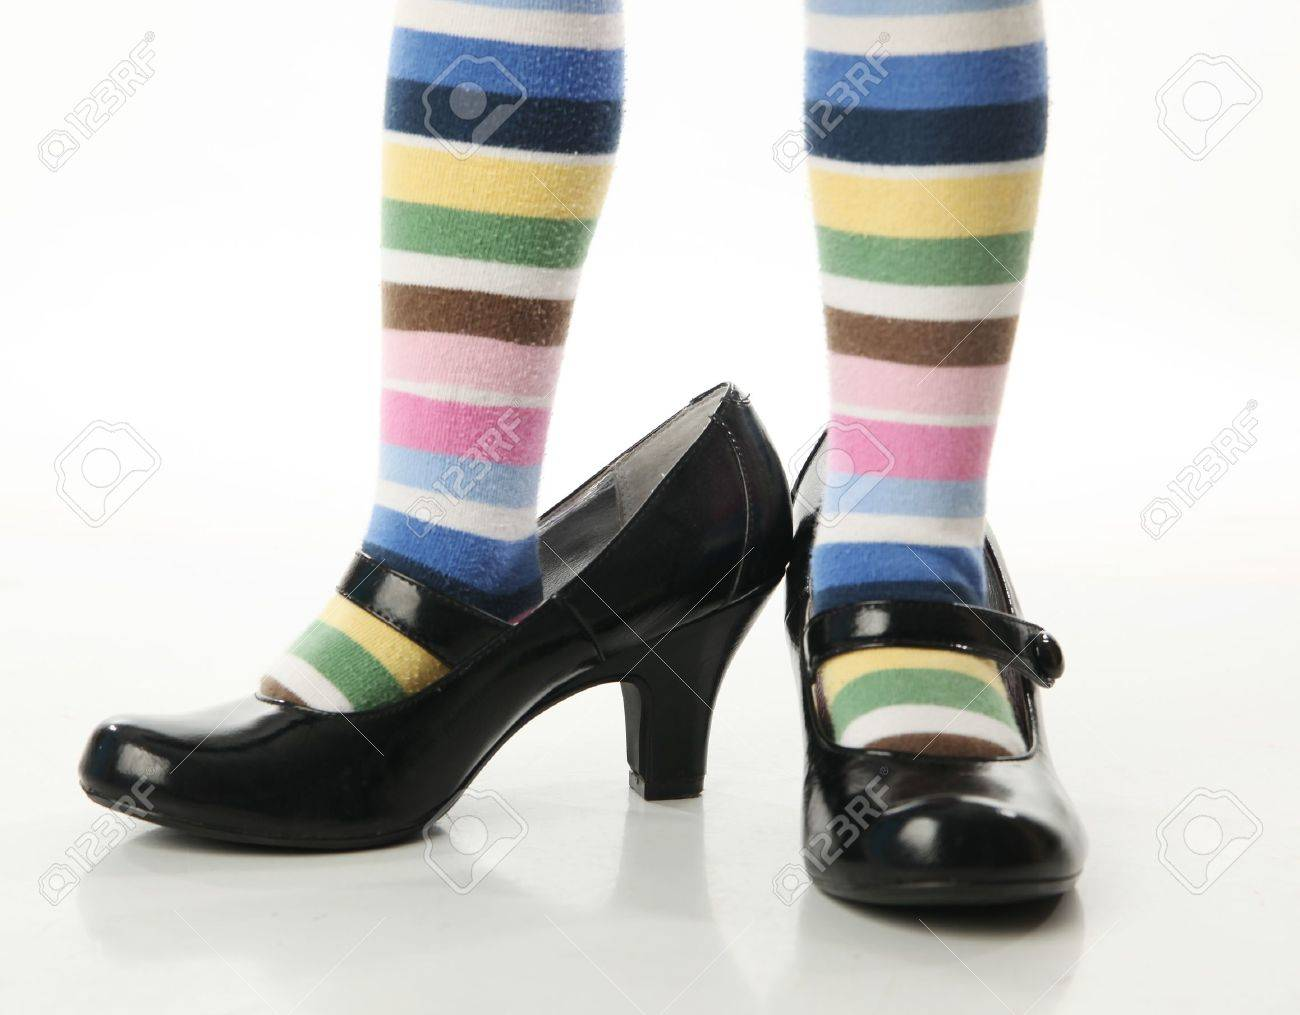 Toddler girl wearing bright colored striped tights trying on mother's high heel shoes - 8809253